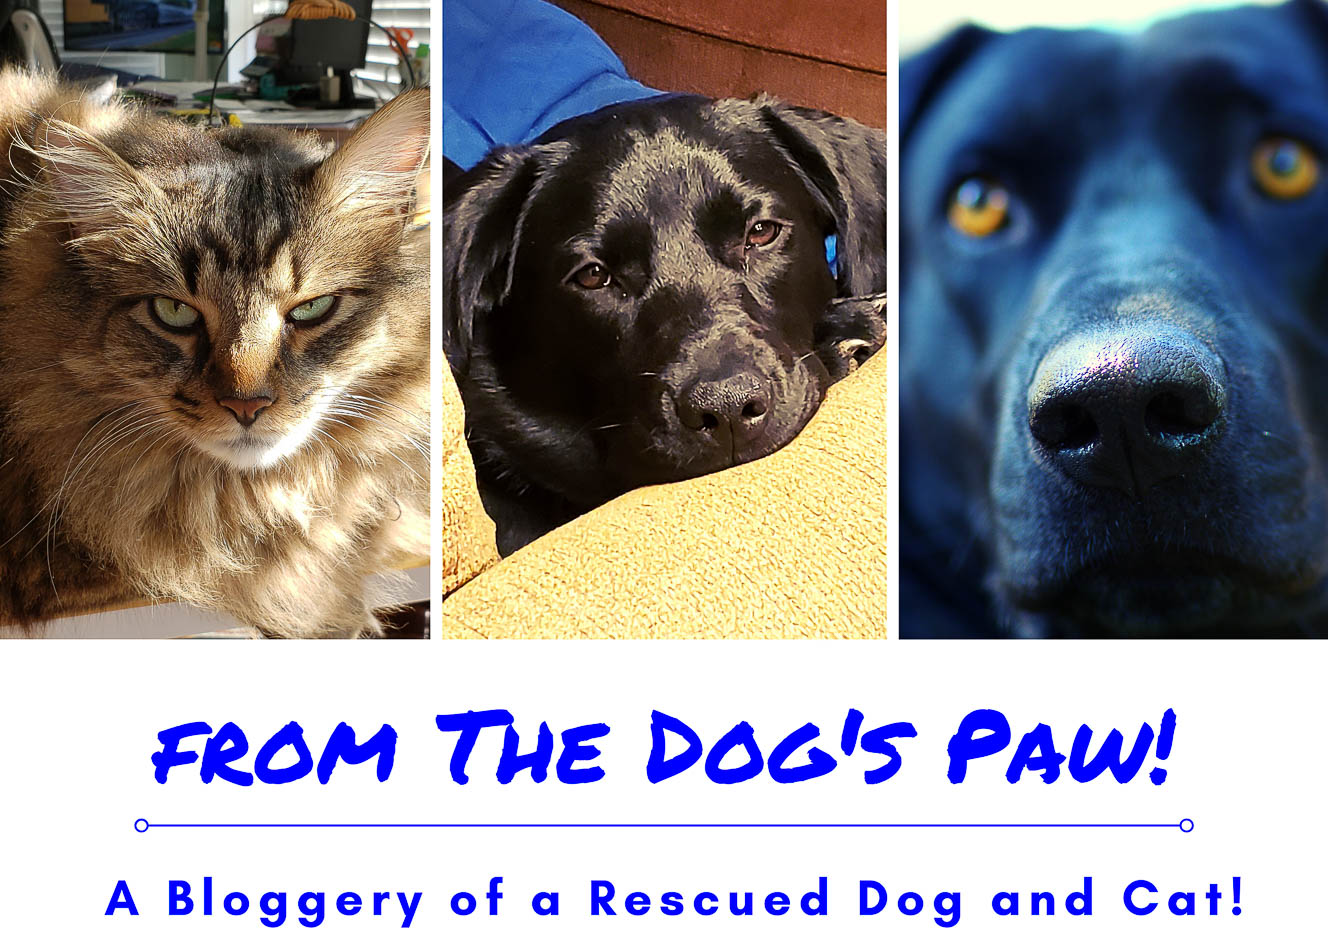 from the Dog's Paw- A Bloggery of a Rescued Dog and Cat